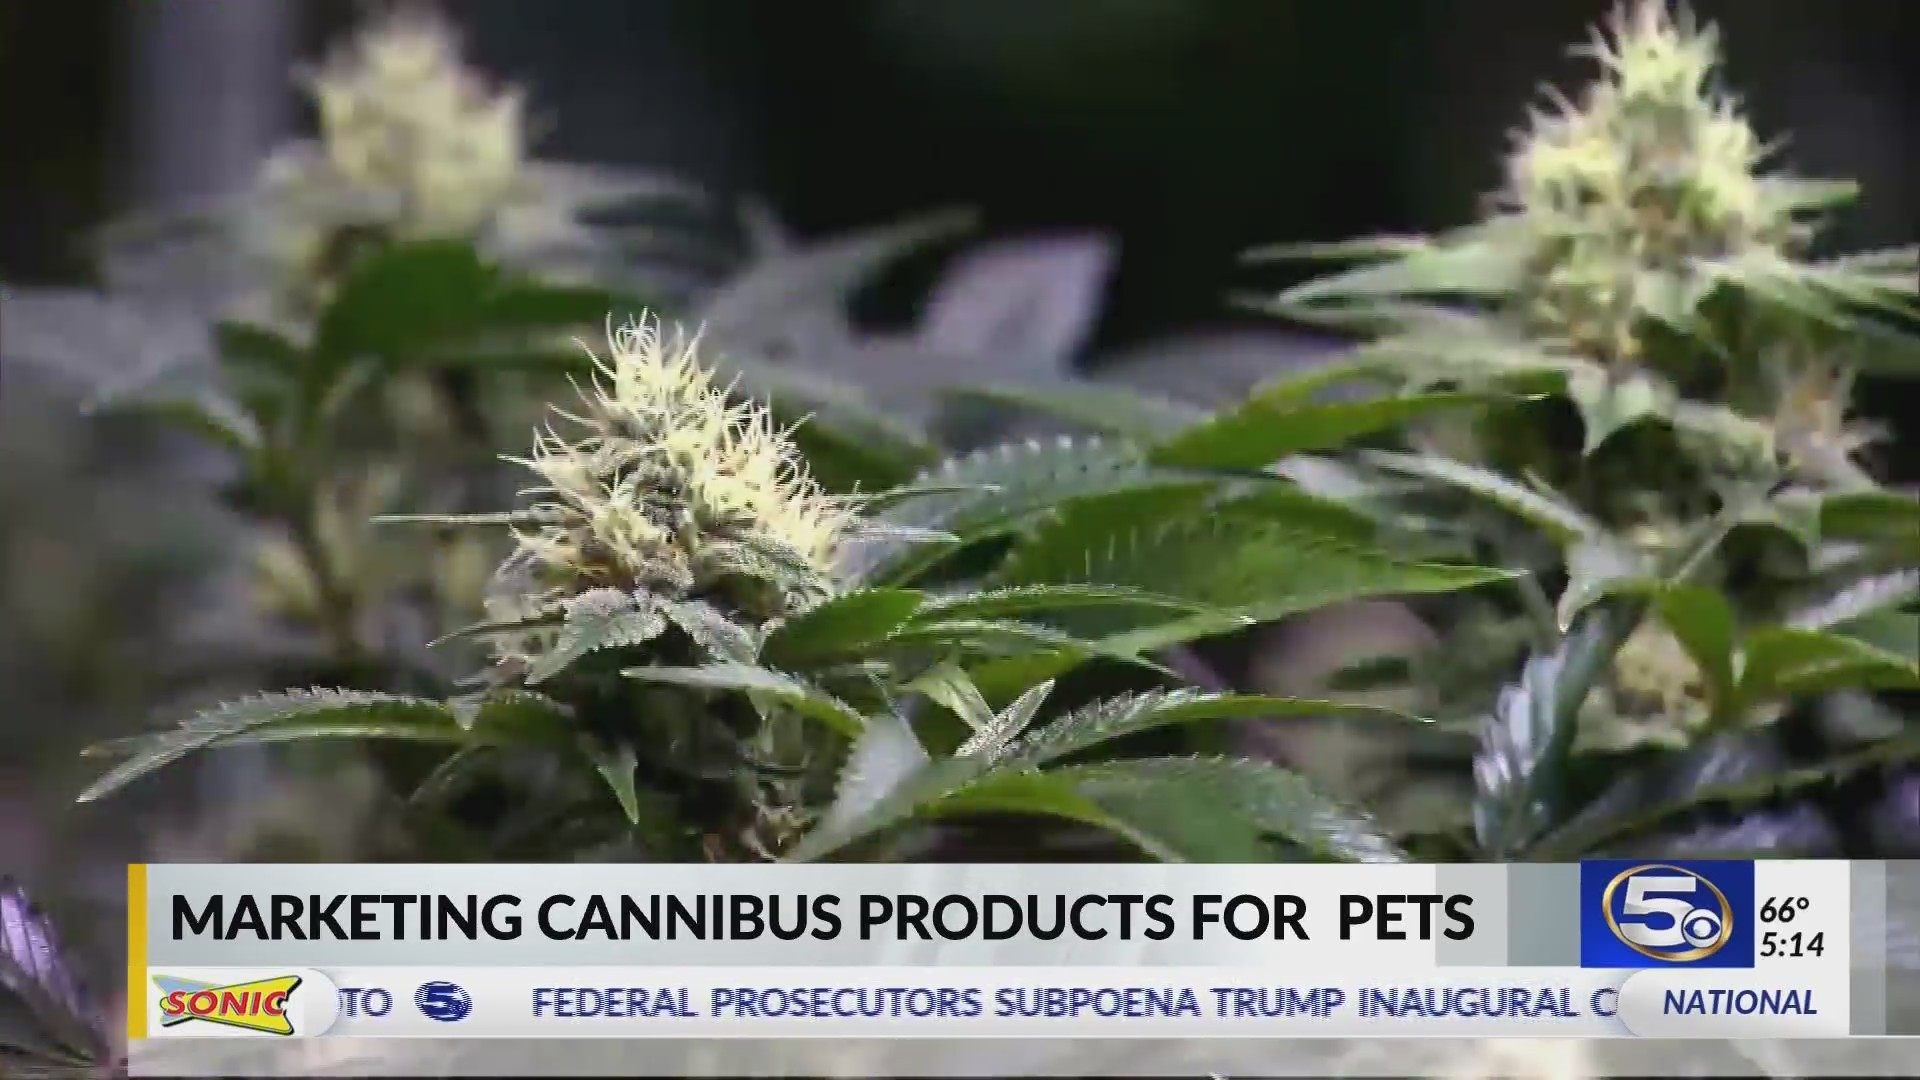 VIDEO: Pot products marketed for pets